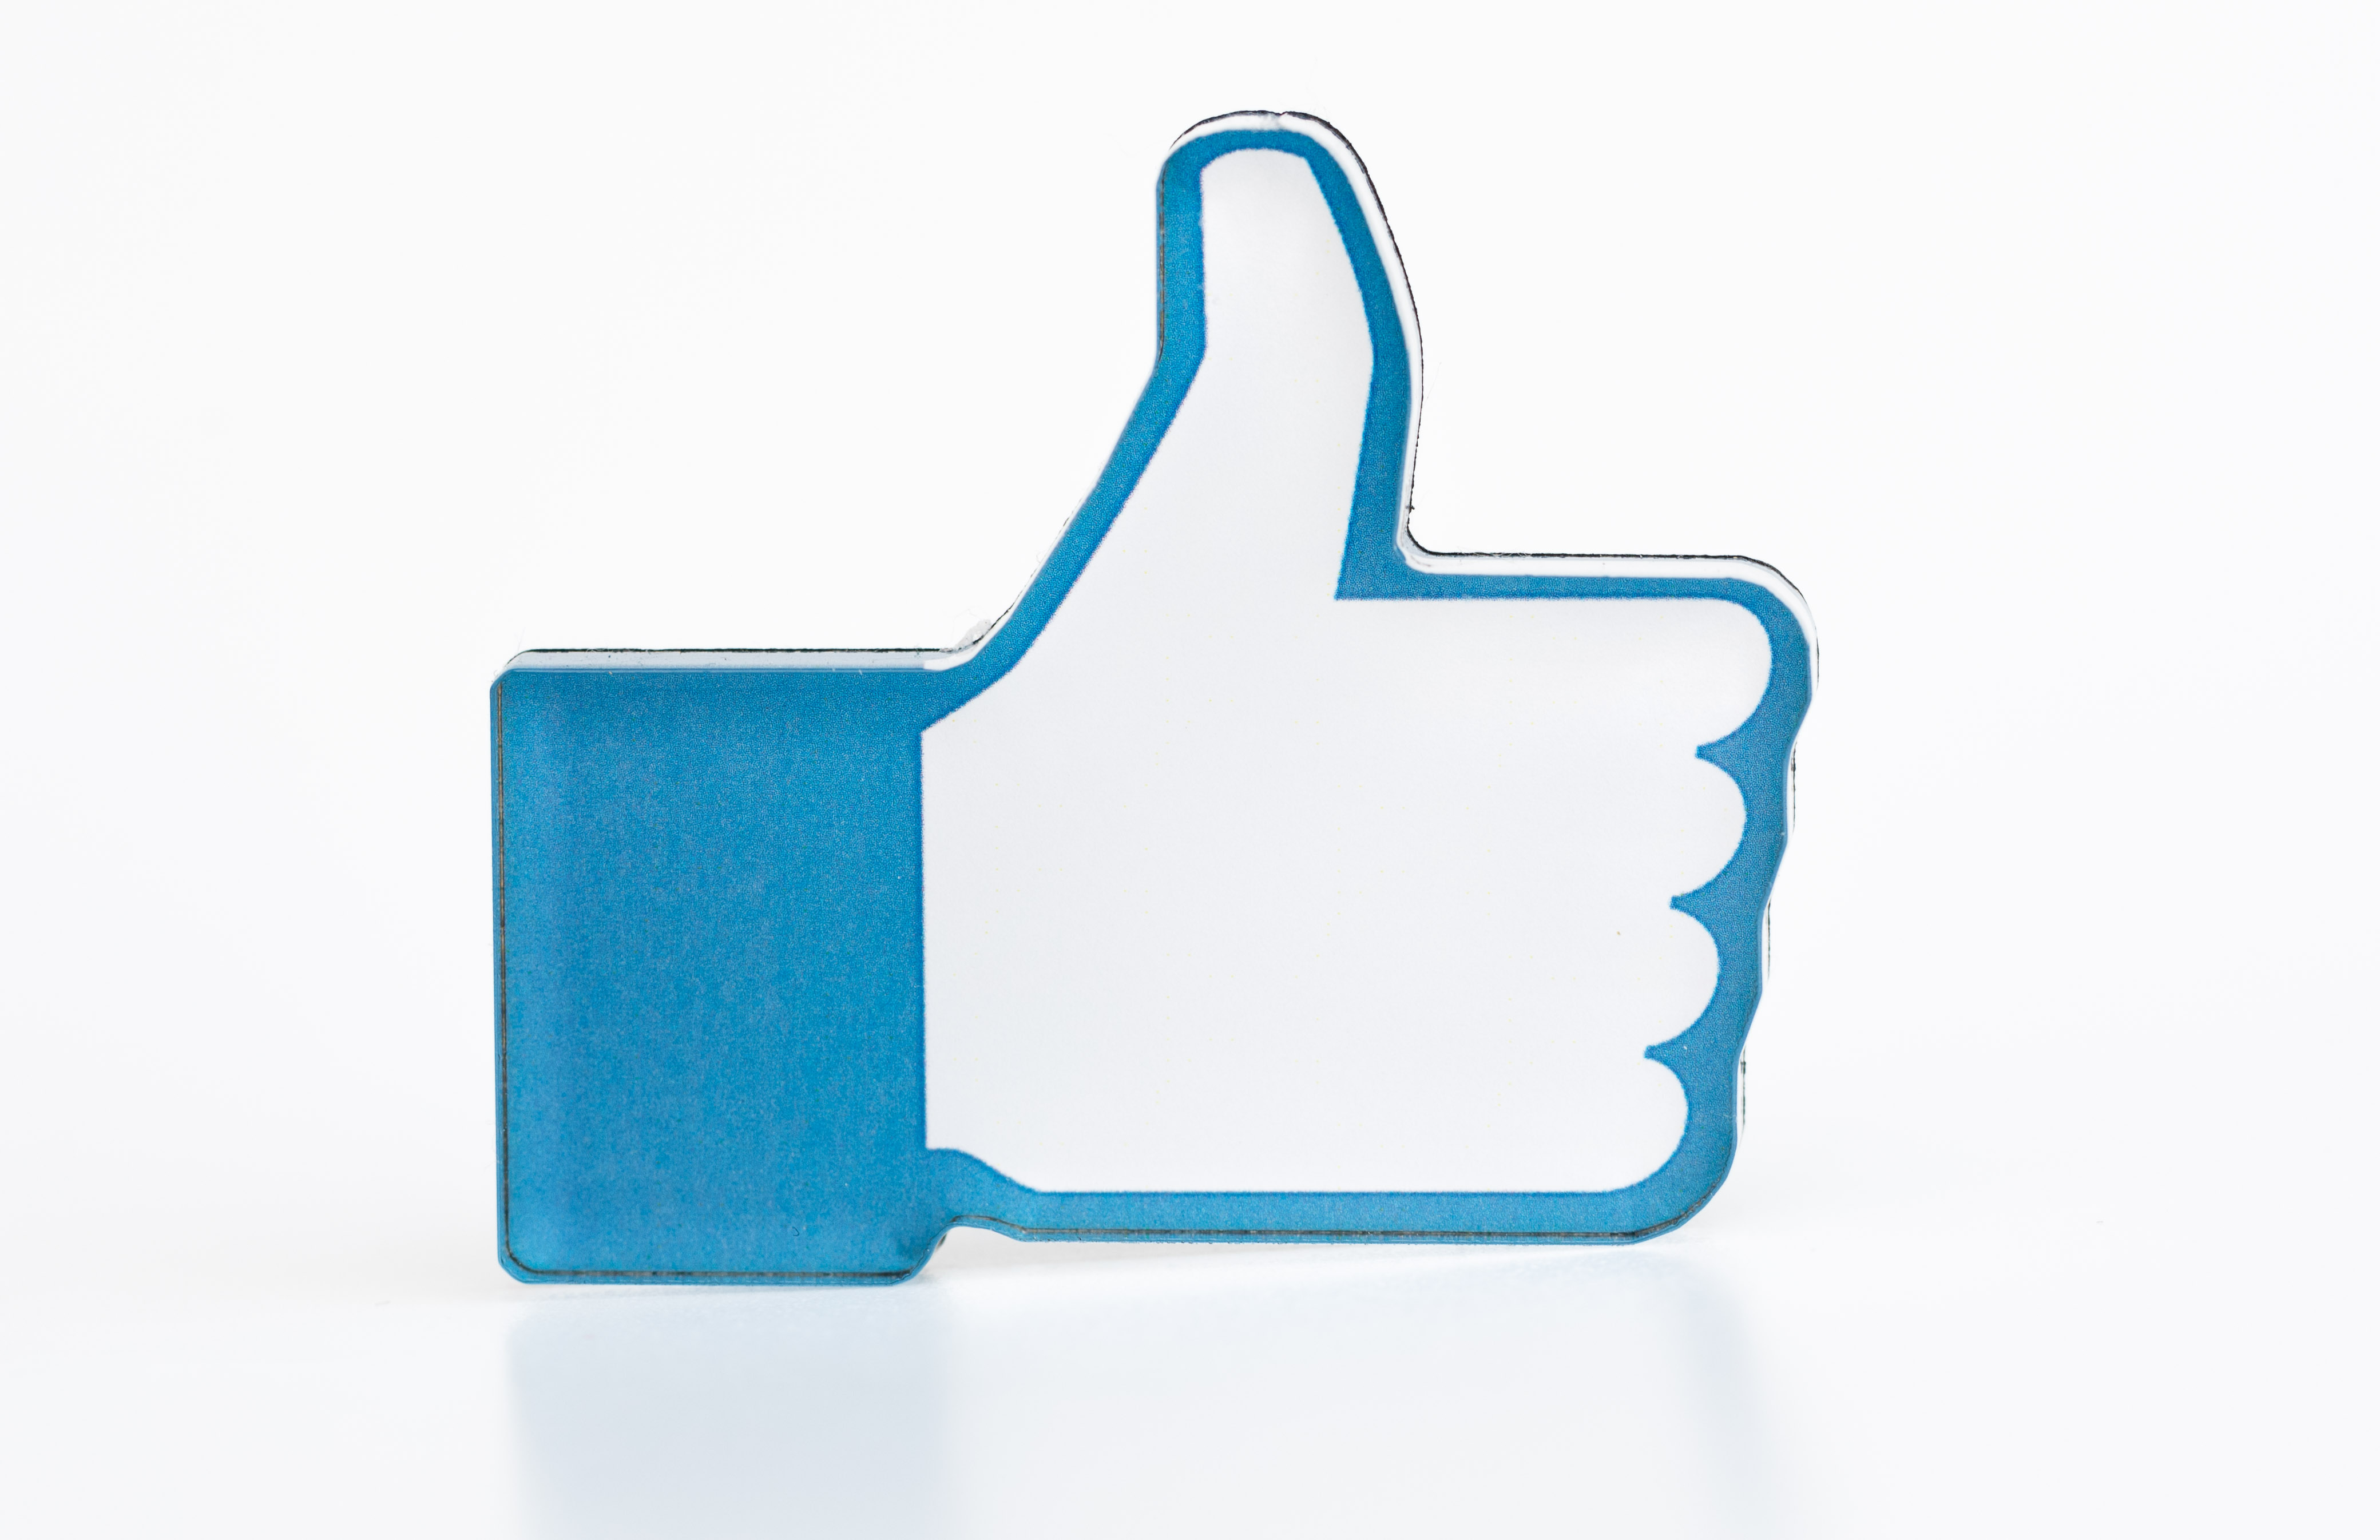 A promotional sticker shows Facebook's thumbs-up graphic.